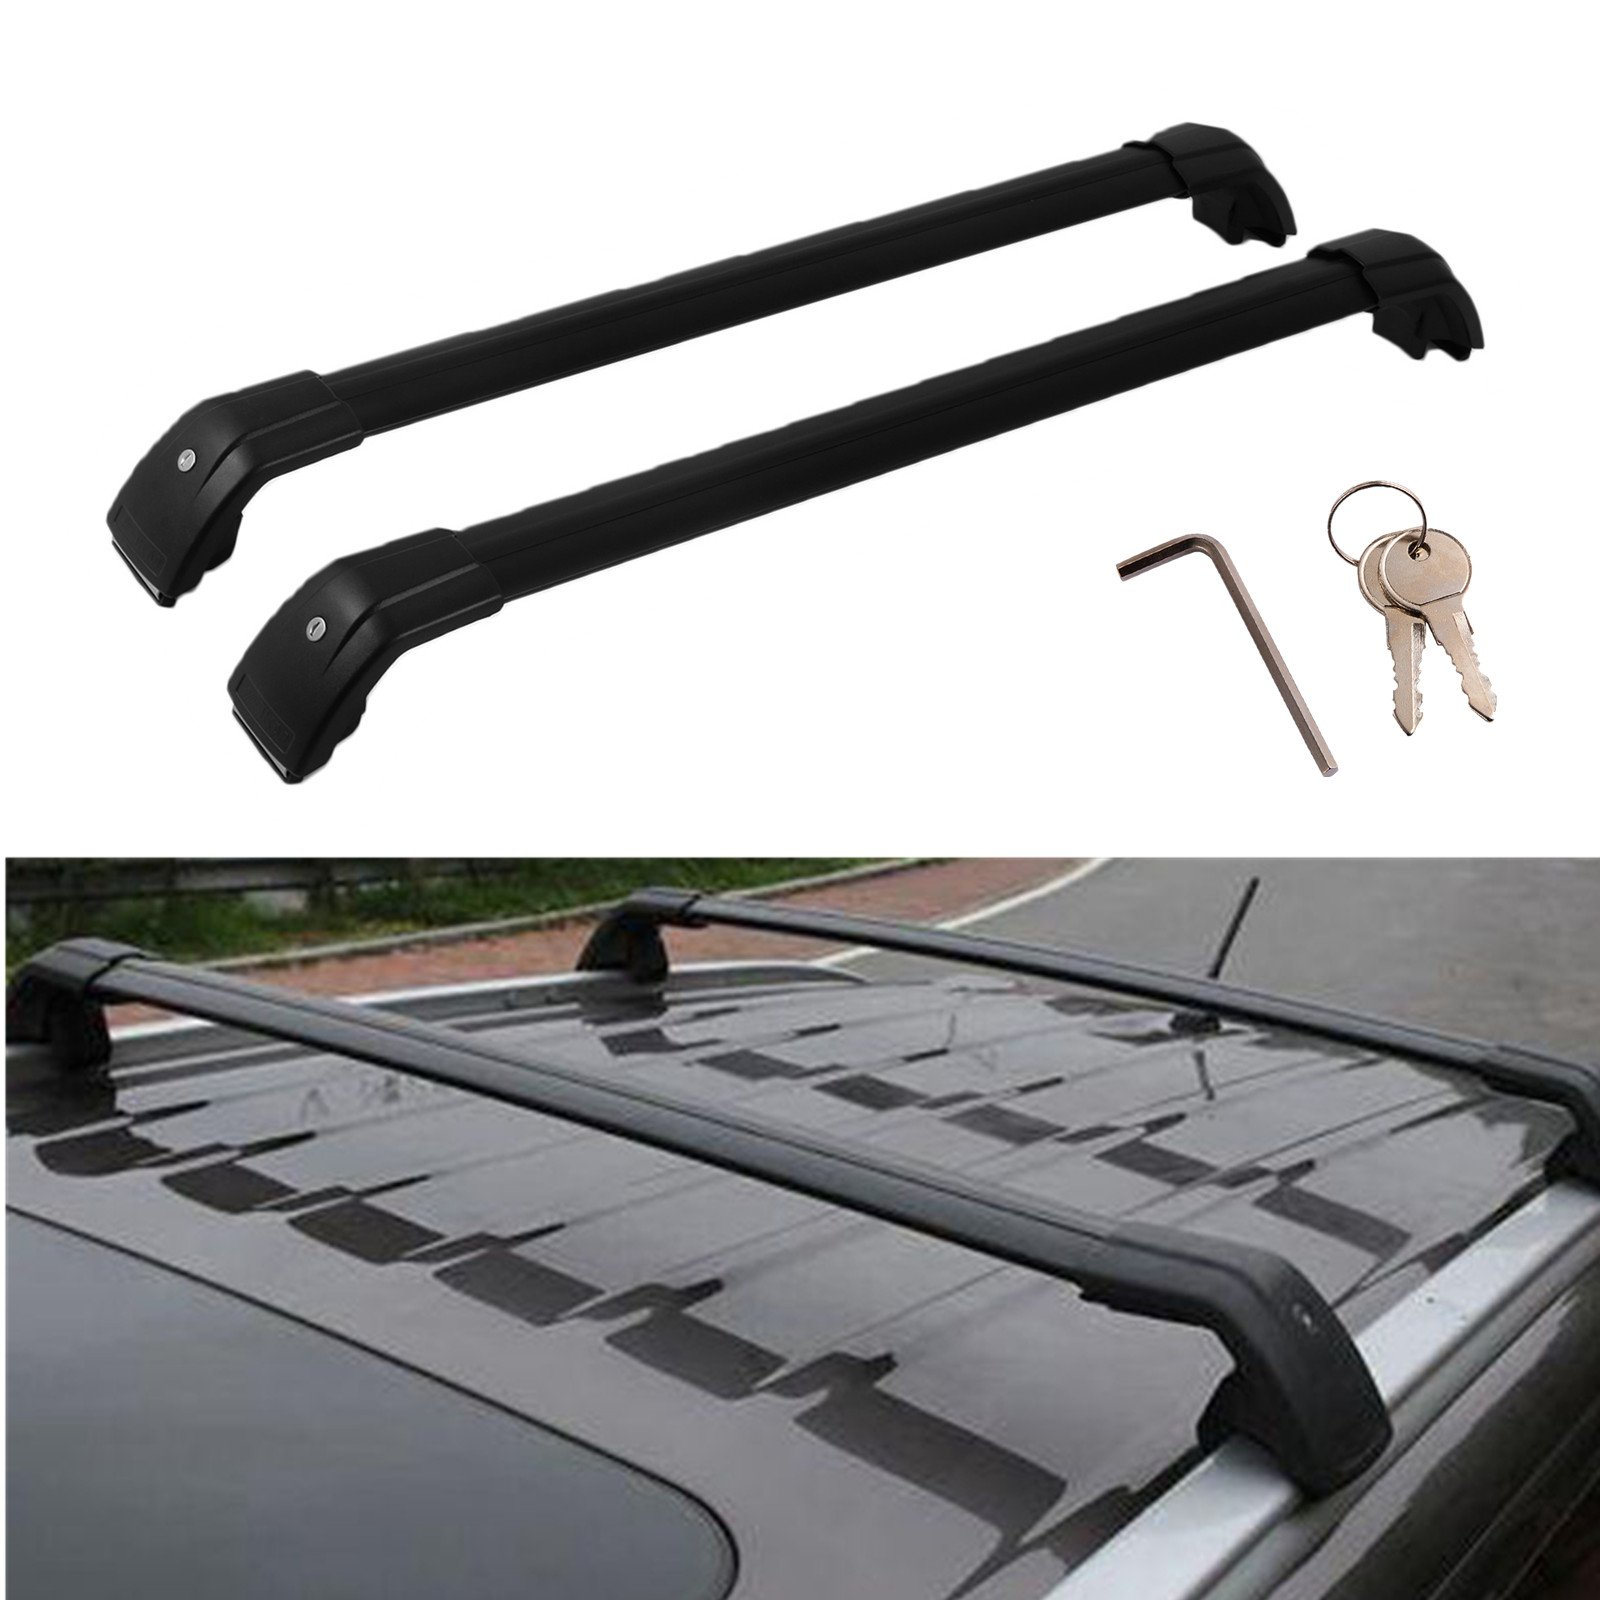 Mophorn Baggage Roof Rack Rail Cross Bar Carrier Fit for Infiniti QX56 QX80